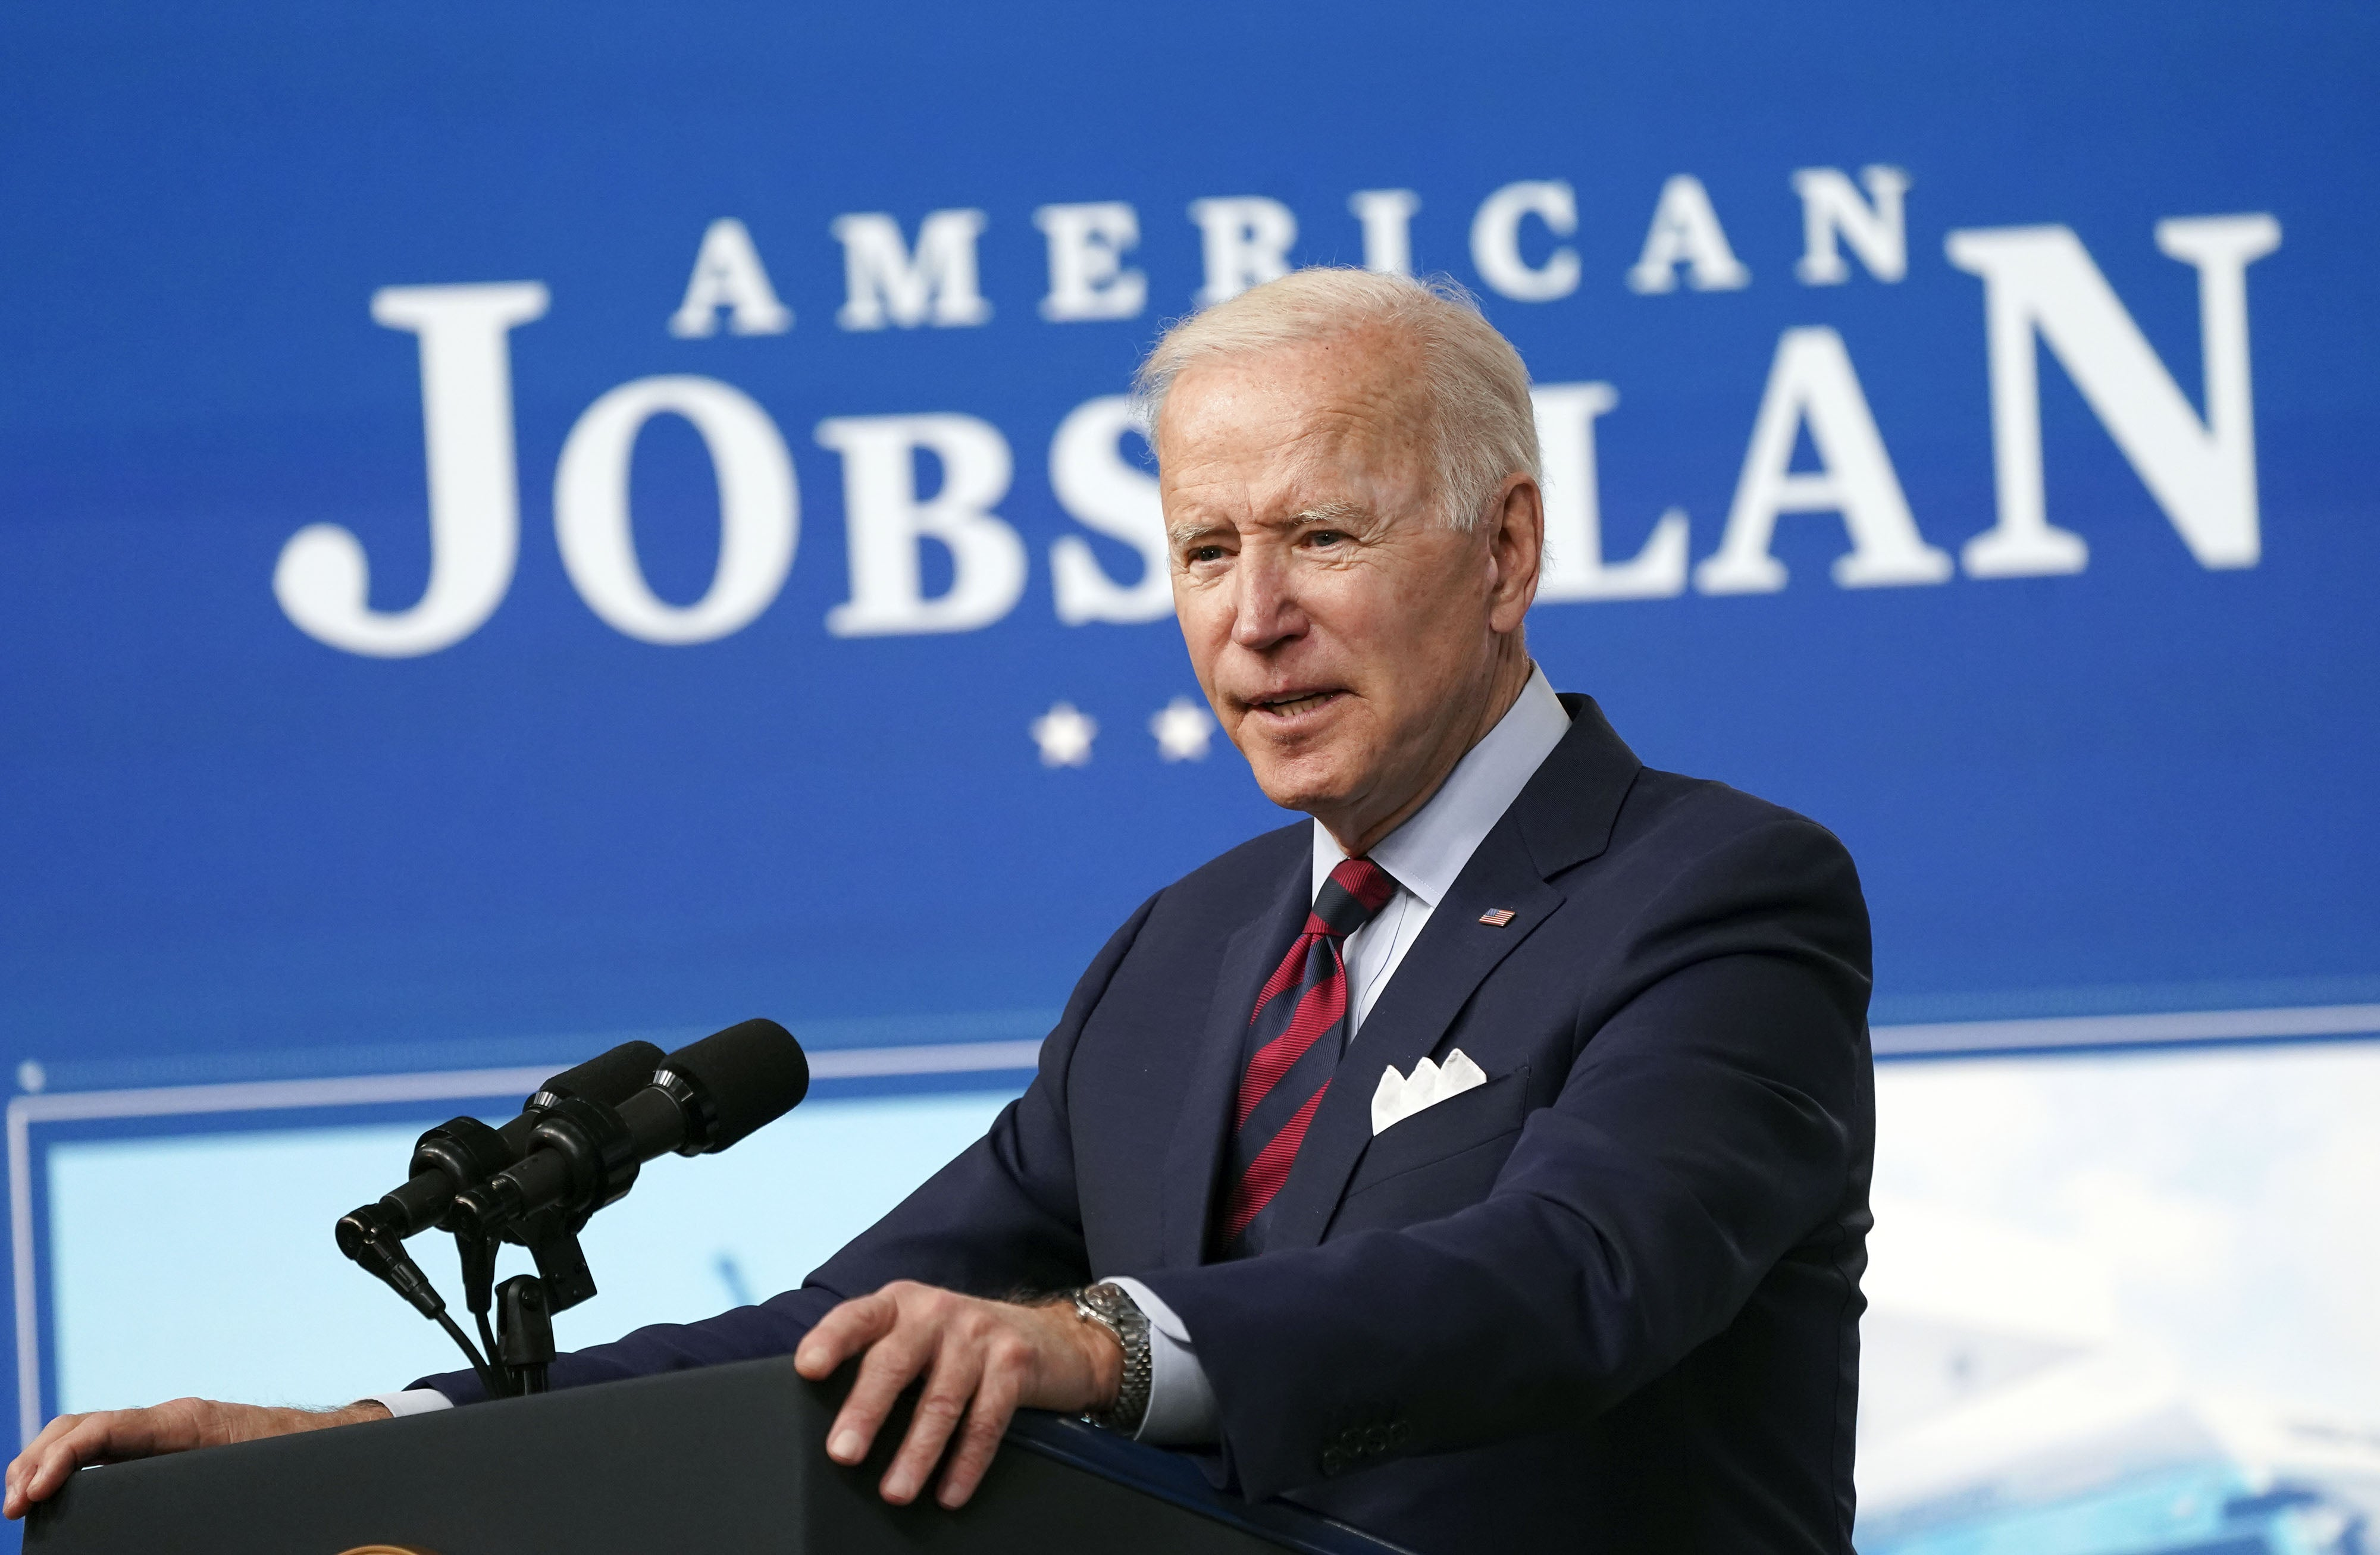 Biden Says Infrastructure Is the Pillar of his Climate Plan